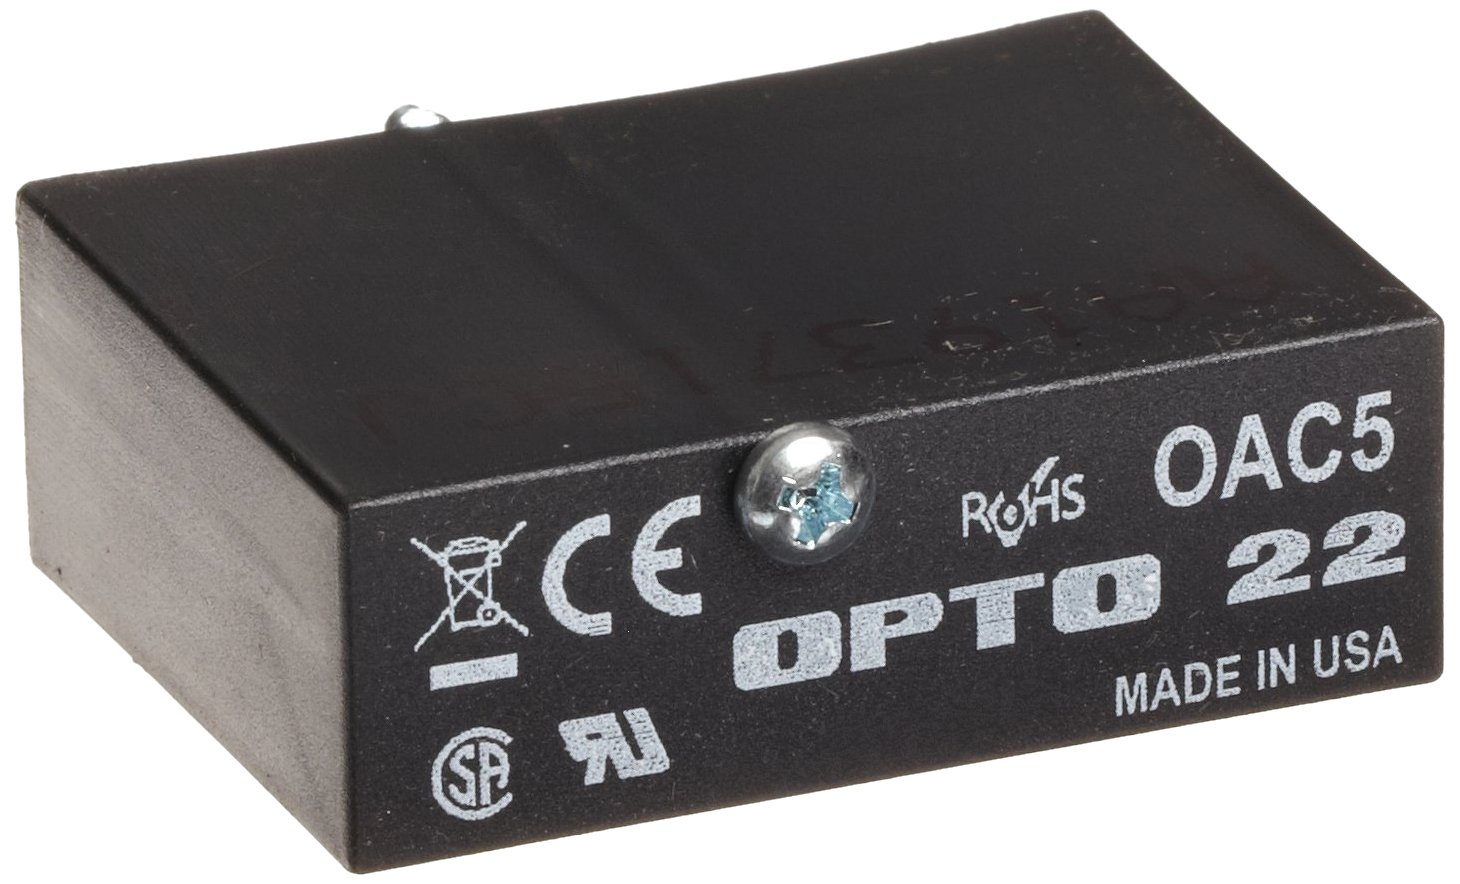 Opto 22 Oac5 Ac Output 12 140 Vac 5 Vdc Logic 4000 Vrms I O Spstno 40 Amp 100 Typical Condition Isolation 20 Milliamps Minimum Load Current Io Modules Industrial Scientific